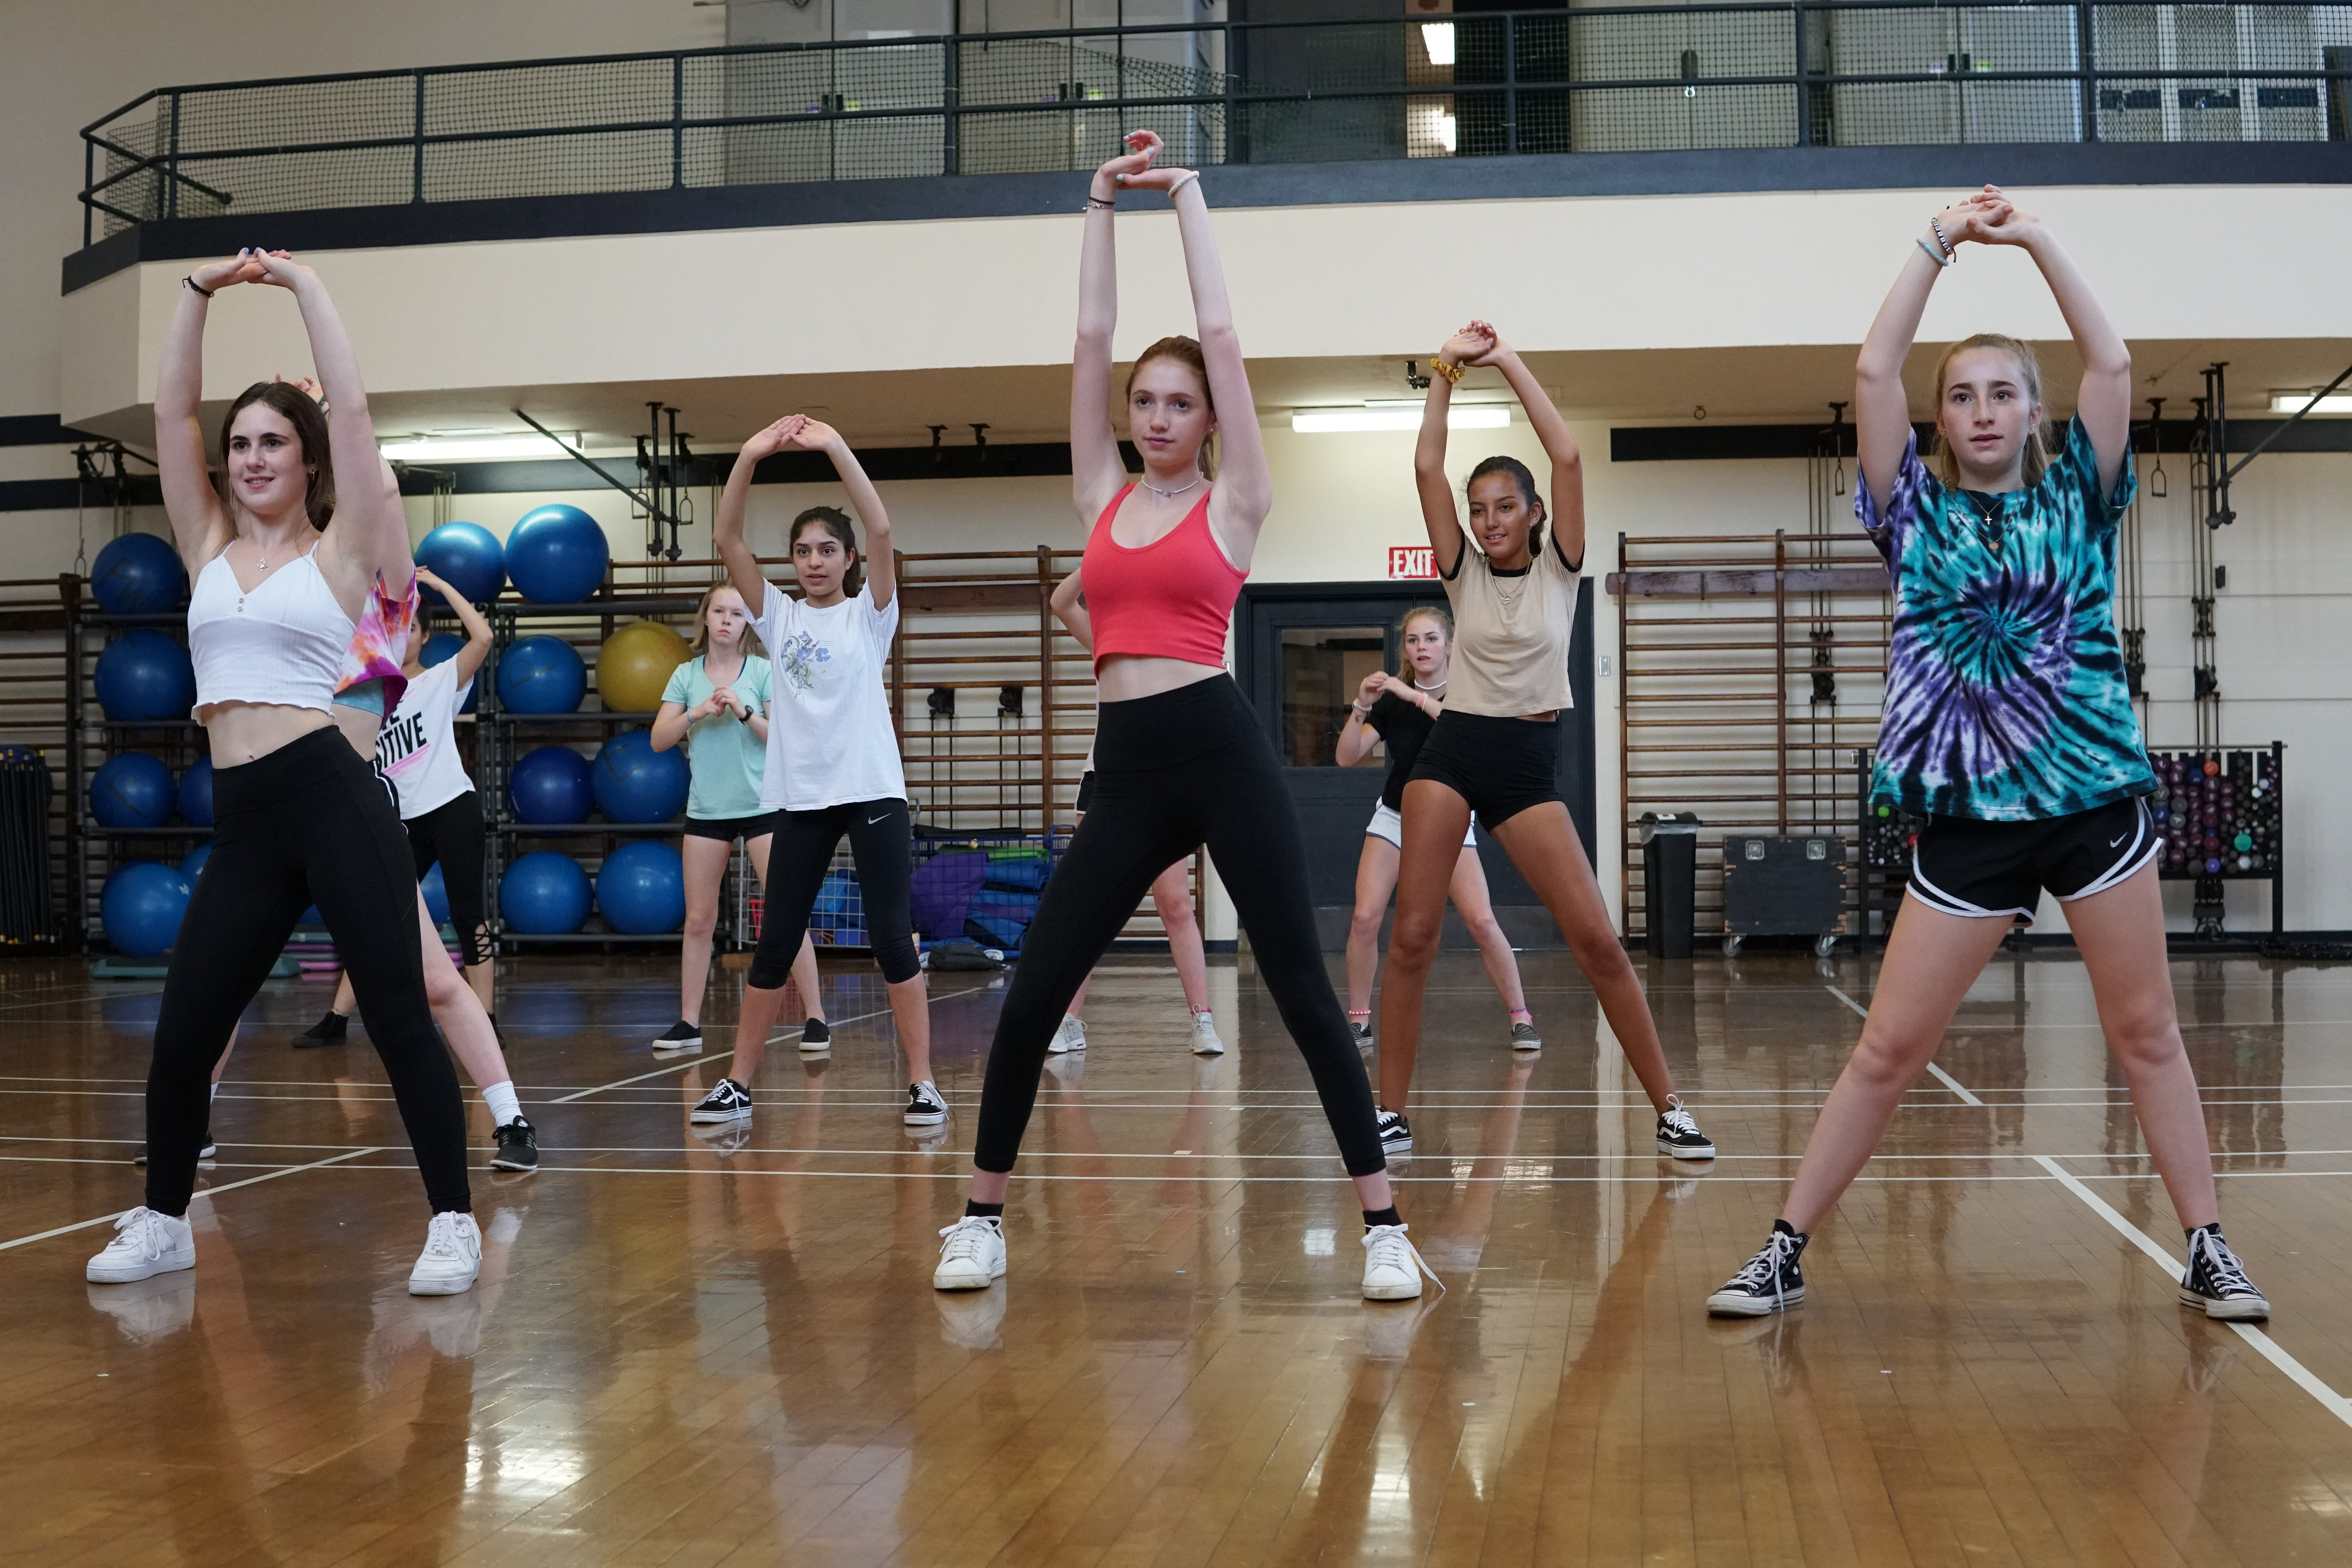 Zumba Workshop : 06-24-2019-S1-Zumba_Workshop-Yale_-_1_of_13.jpg